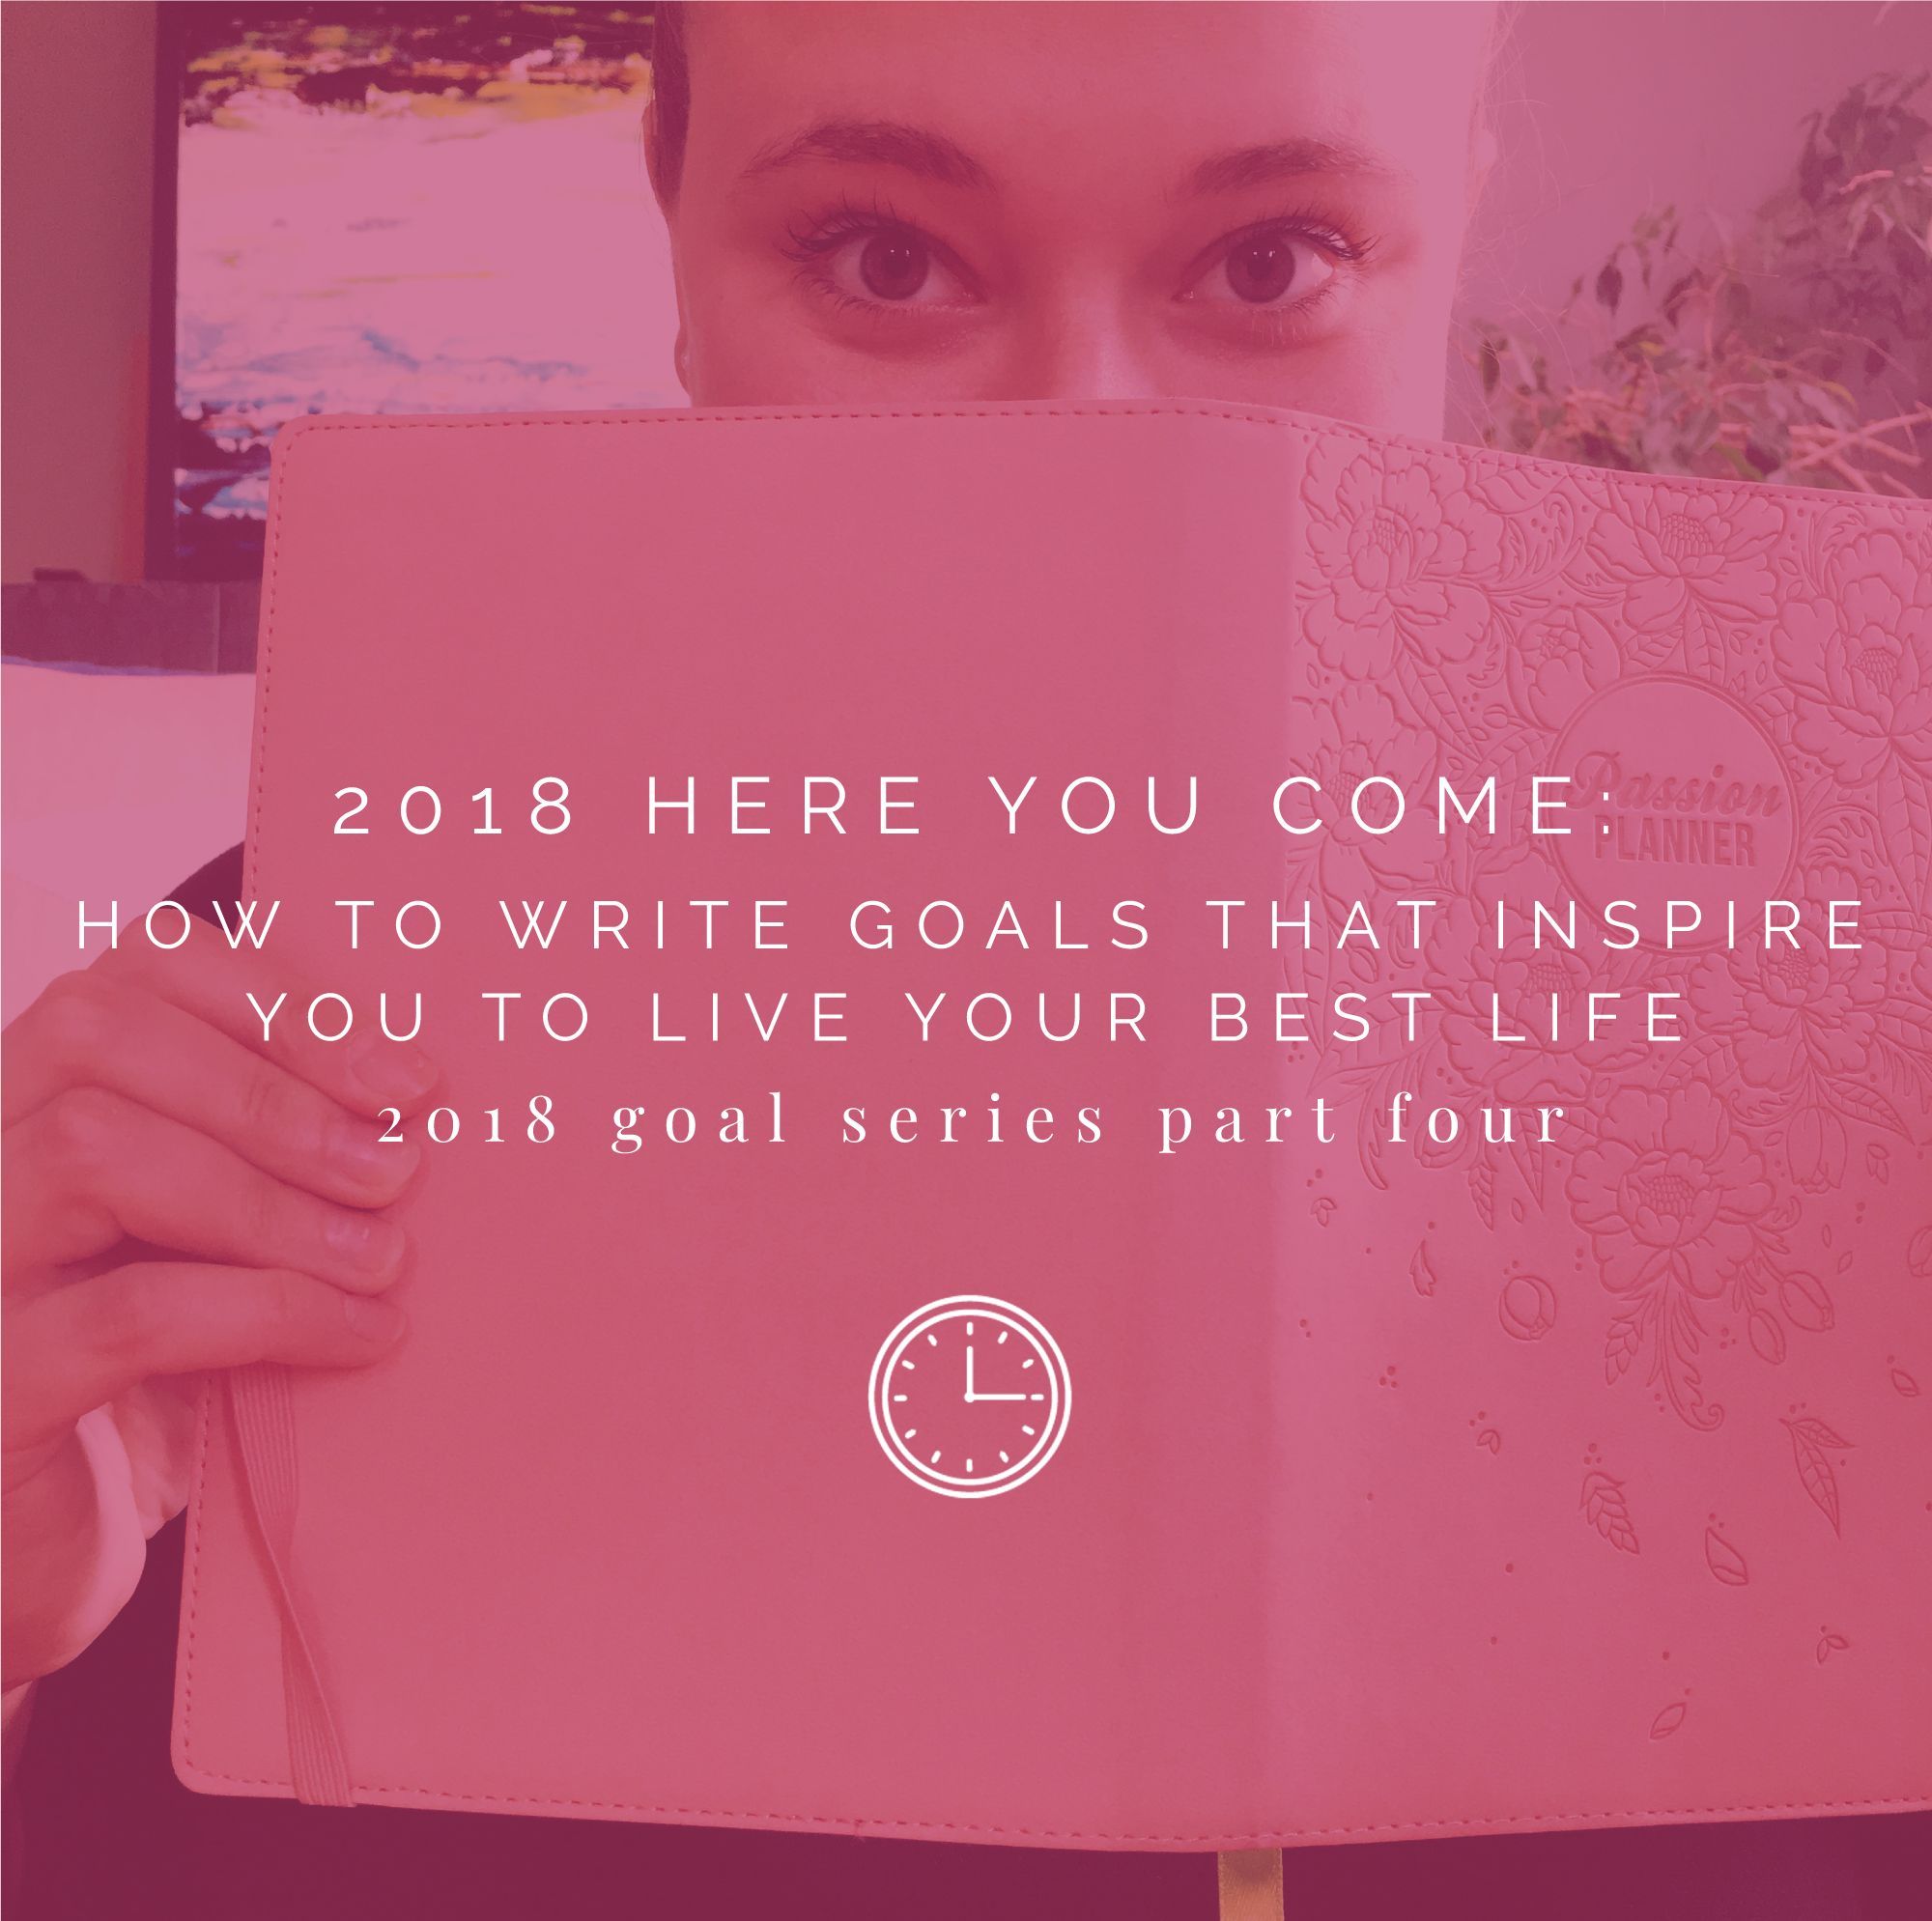 How to write goals that inspire you to live you best life